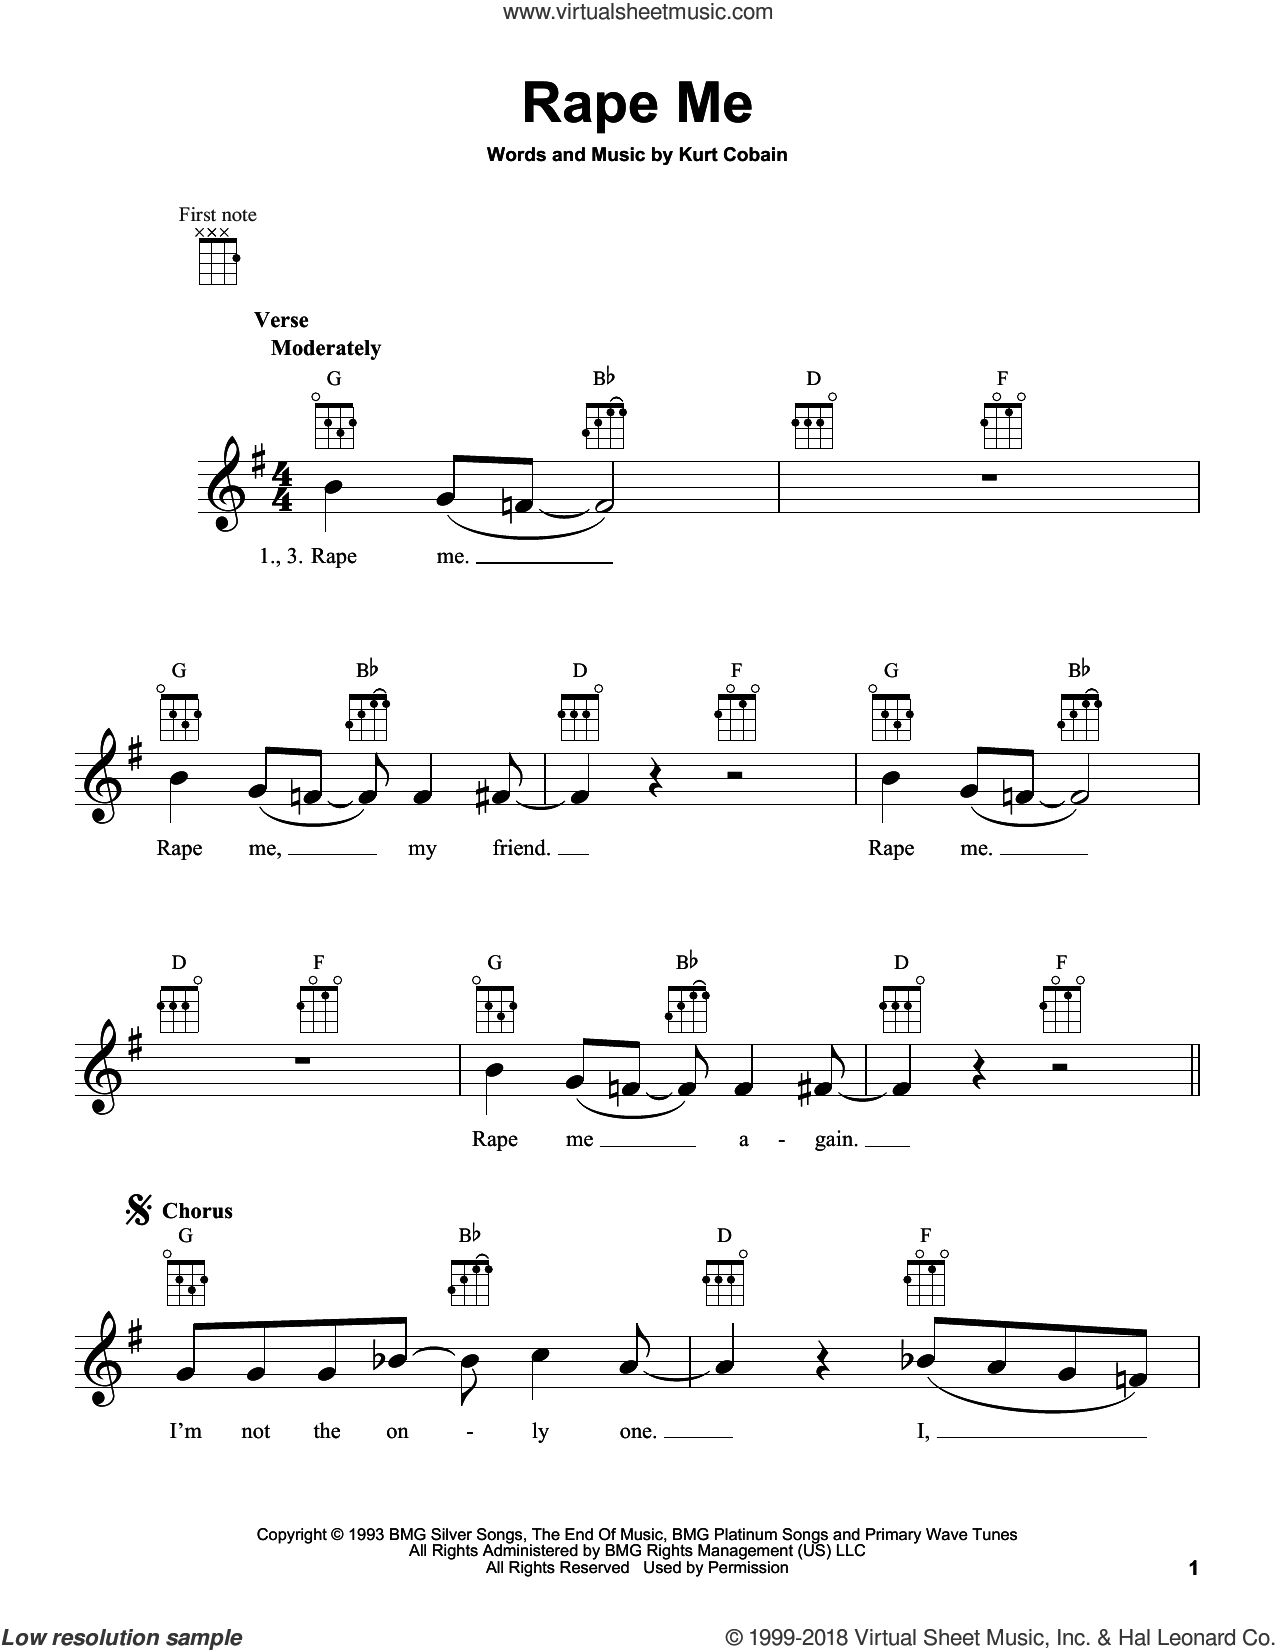 Rape Me sheet music for ukulele by Nirvana and Kurt Cobain, intermediate skill level